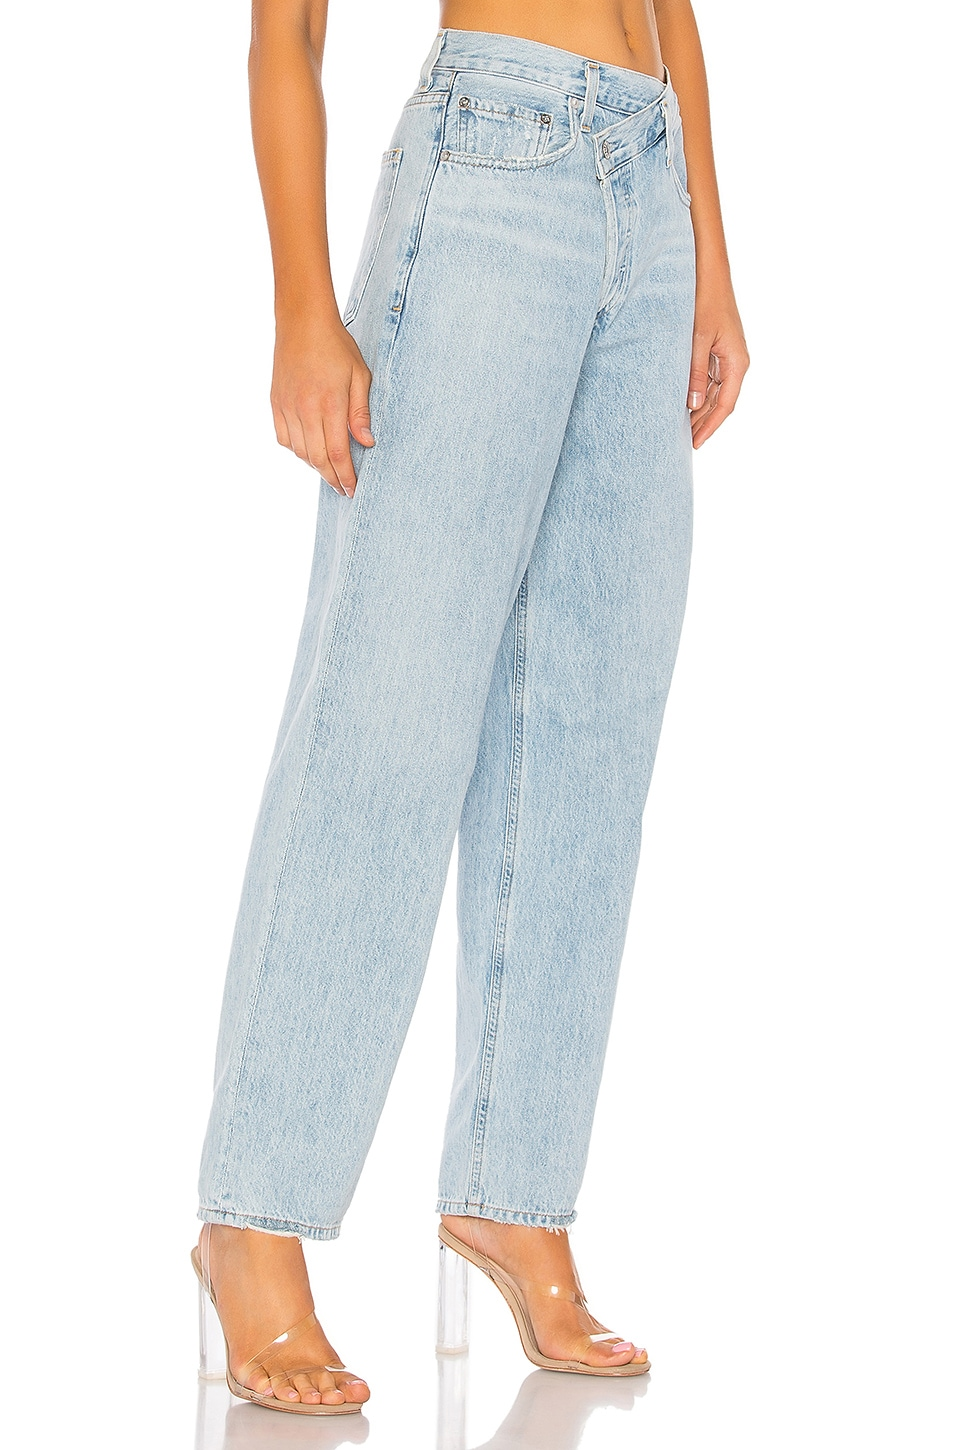 Criss Cross Upsized Jean, view 3, click to view large image.